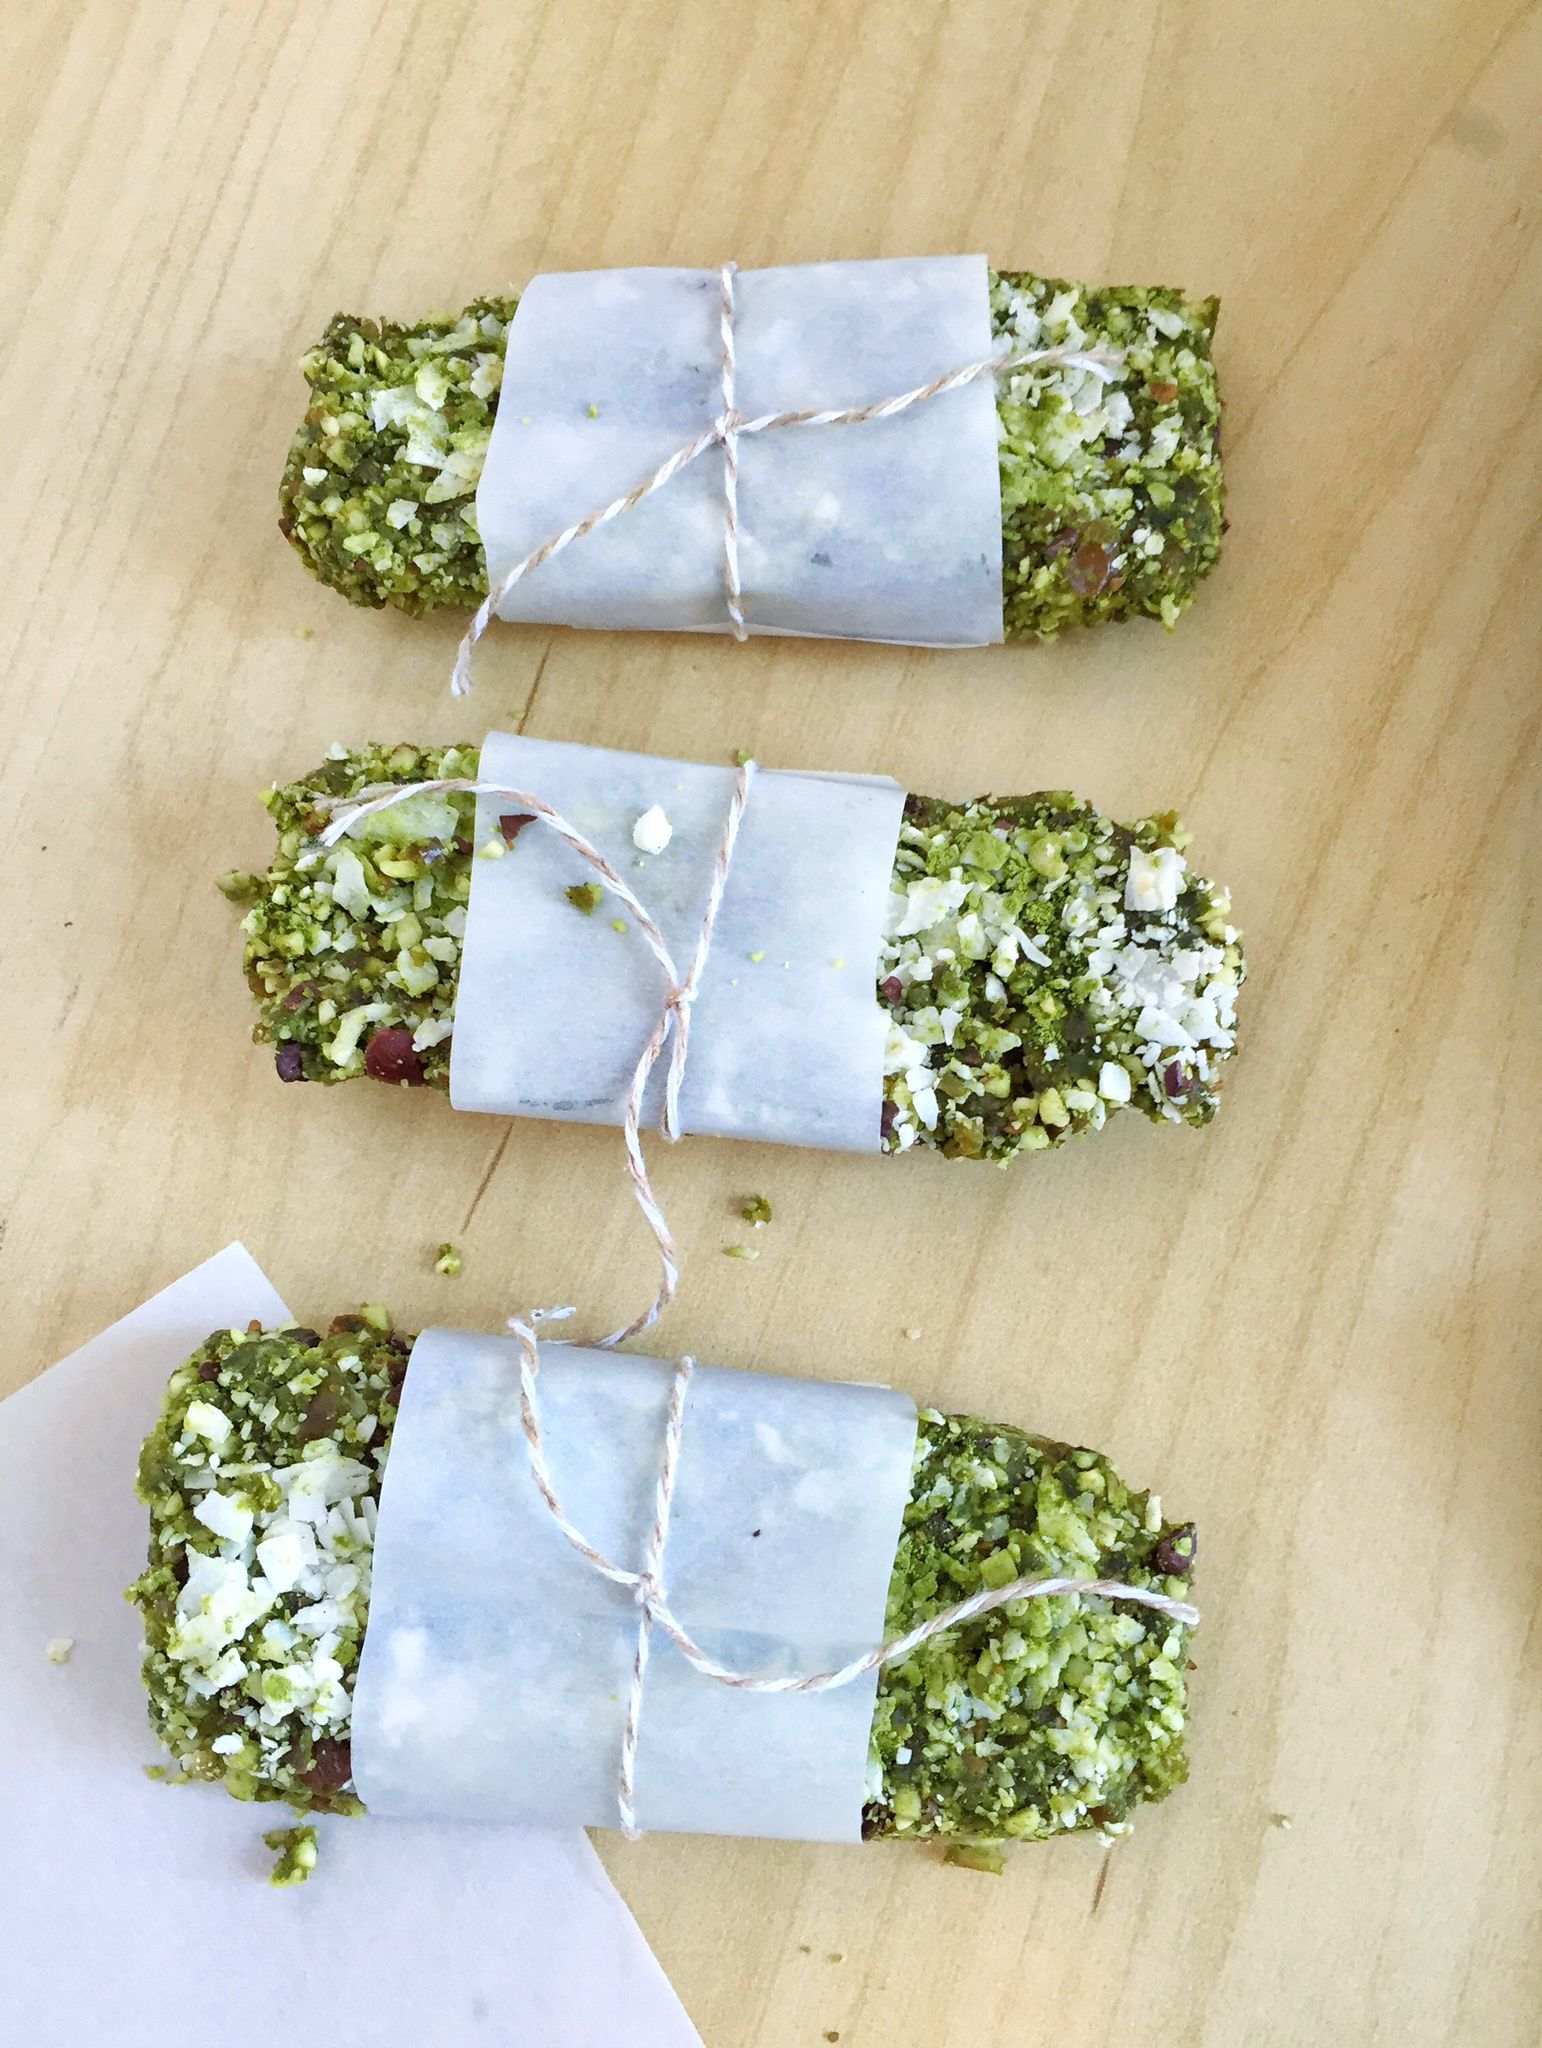 Vegan Matcha Energy Bars are a delicious and health, on-the-go snack! Made with green tea and coconut, these are delicious and plant-based!